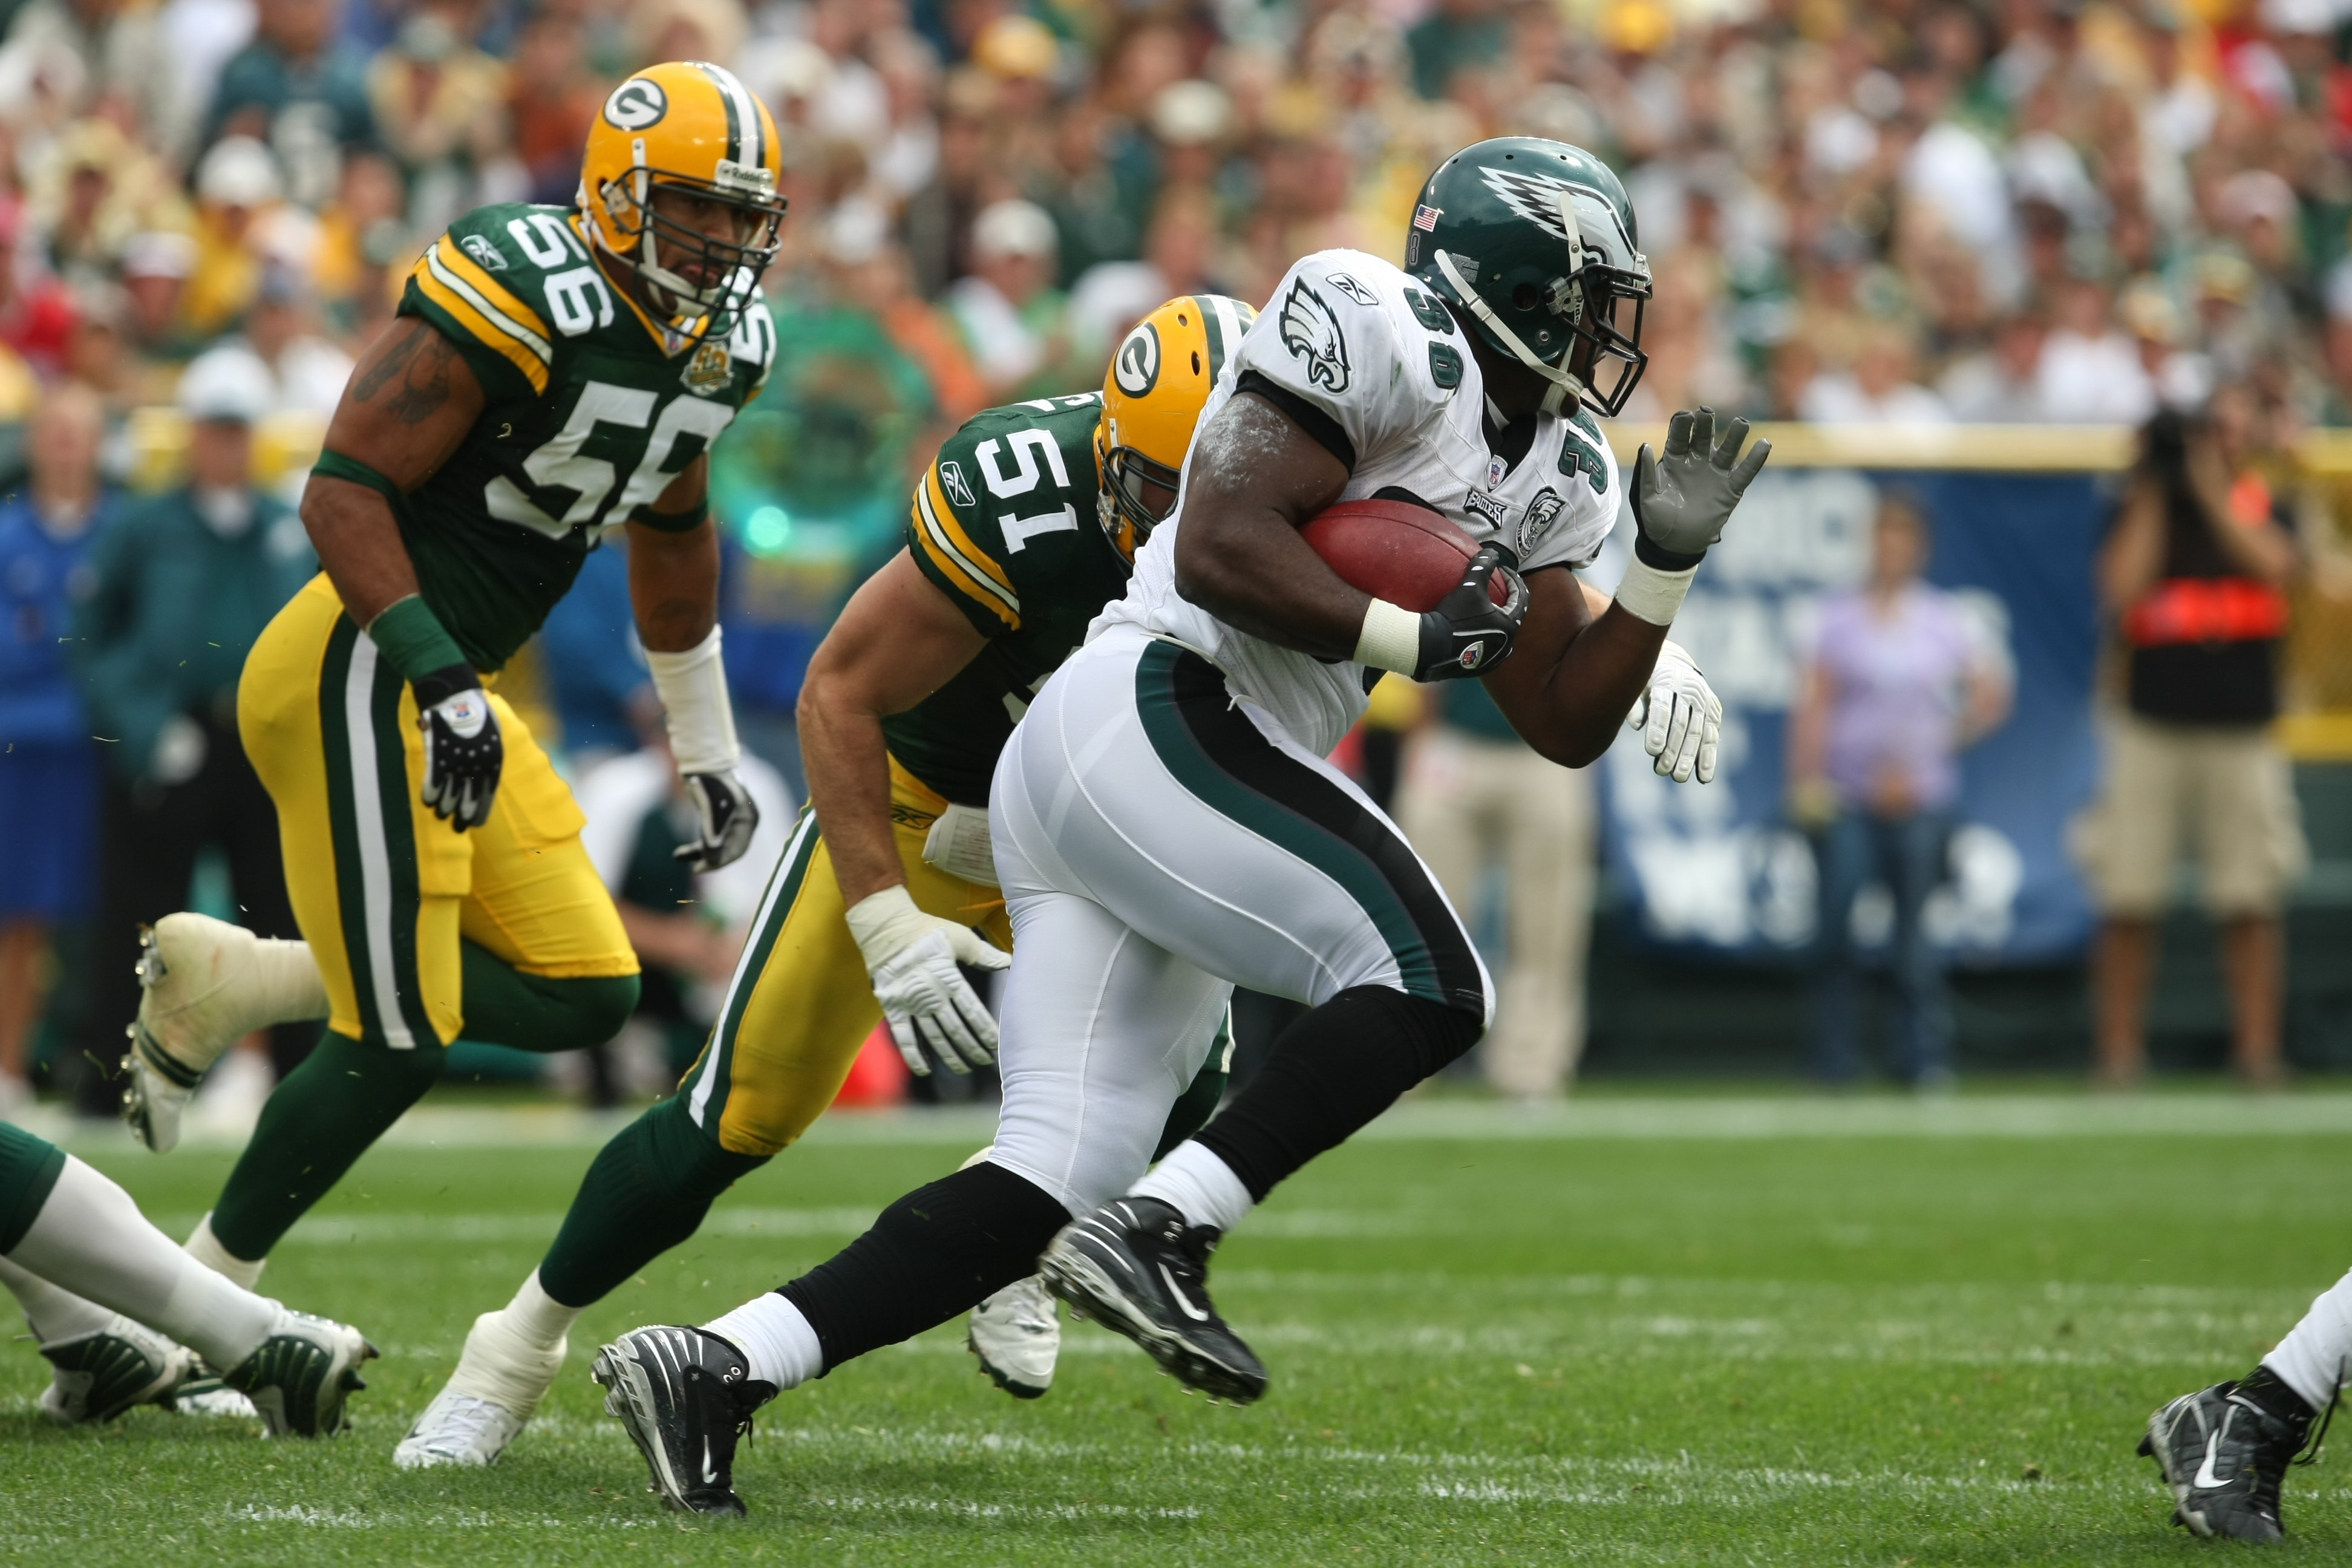 GREEN BAY, WI - SEPTEMBER 09: J.R. Reed #34 of the Philadelphia Eagles runs against the Green Bay Packers on September 9, 2007 at Lambeau Field in Green Bay, Wisconsin. he Packers defeated the Eagles 16-13. (Photo by Jonathan Daniel/Getty Images)